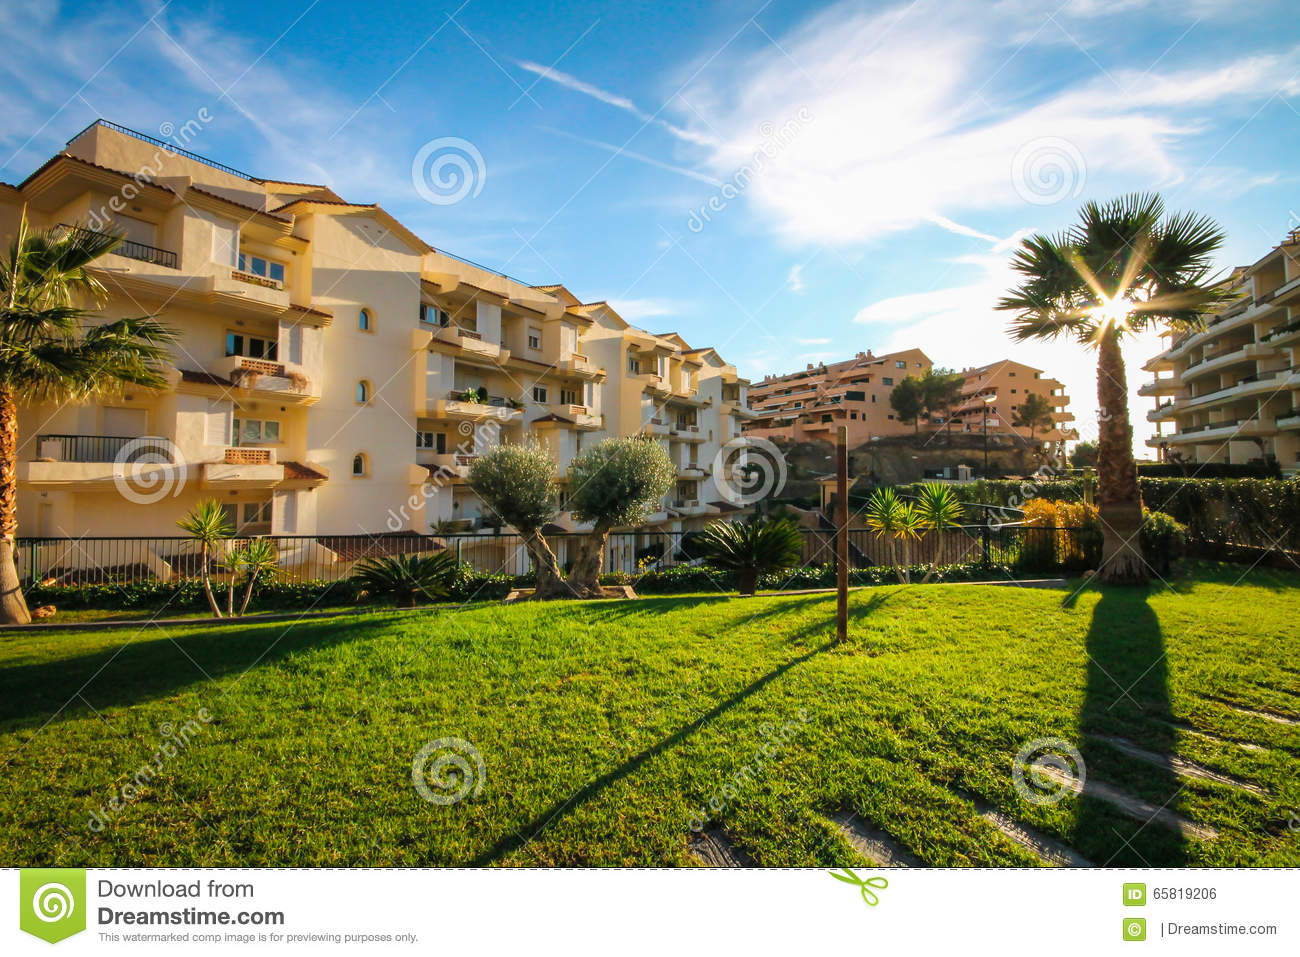 Landscape Design Of The Area With Palm Trees And A Living Fence In